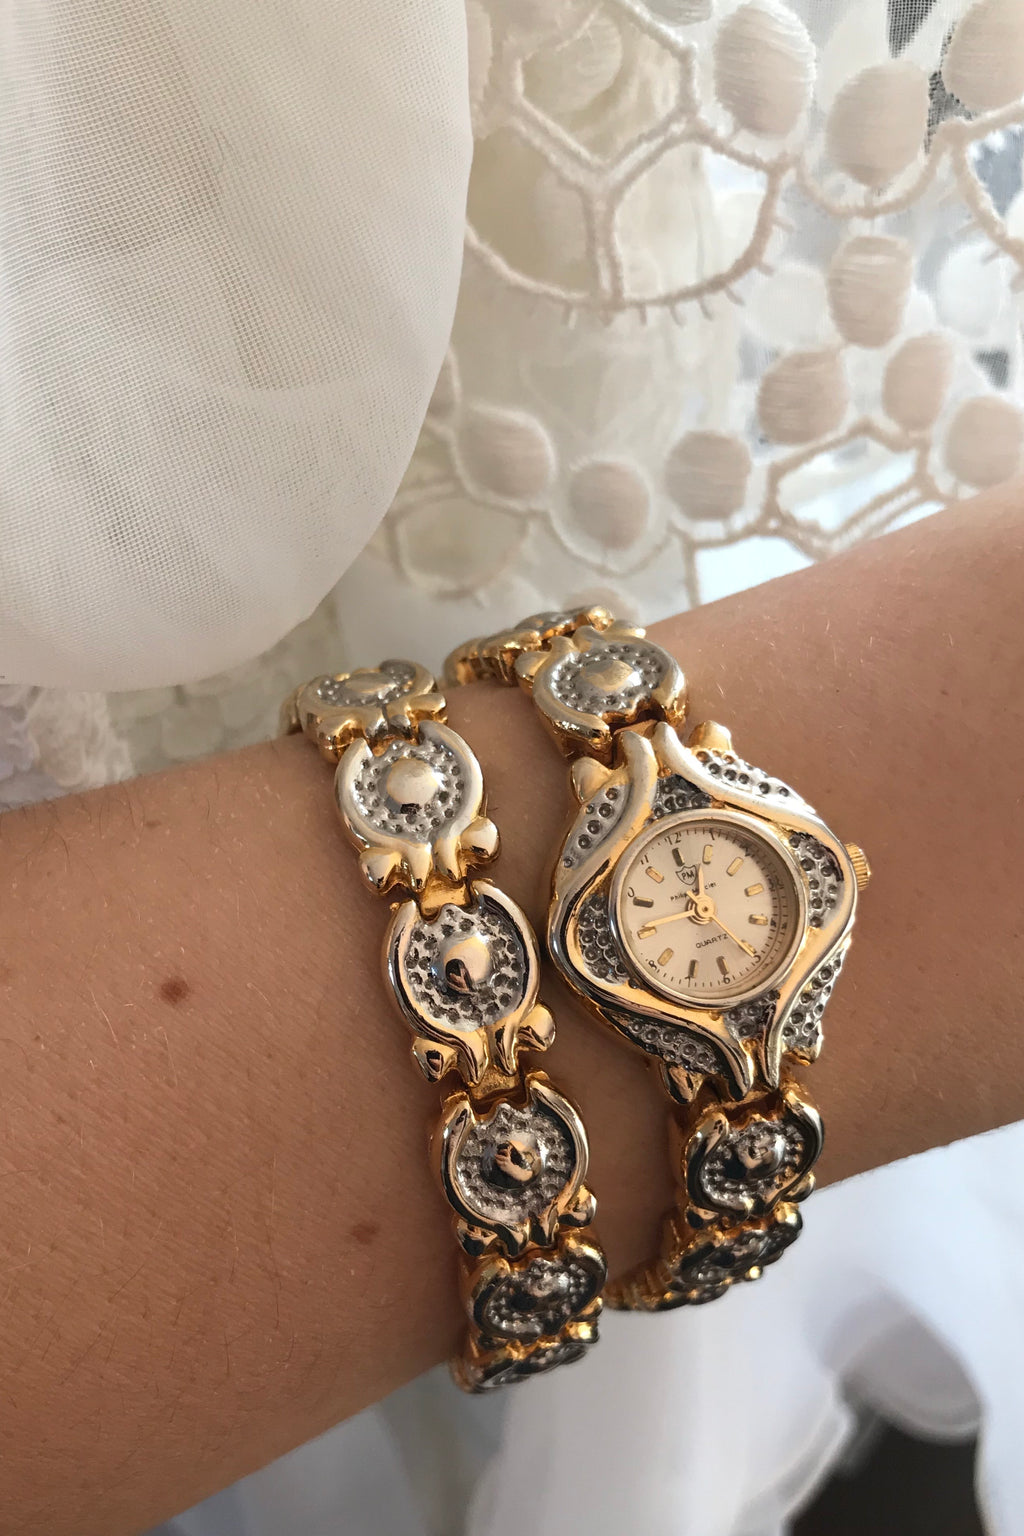 Vintage 1980s Phillip Mercier 18k Gold Plated Quartz Gold & Silver Tone Watch & Bracelet Set